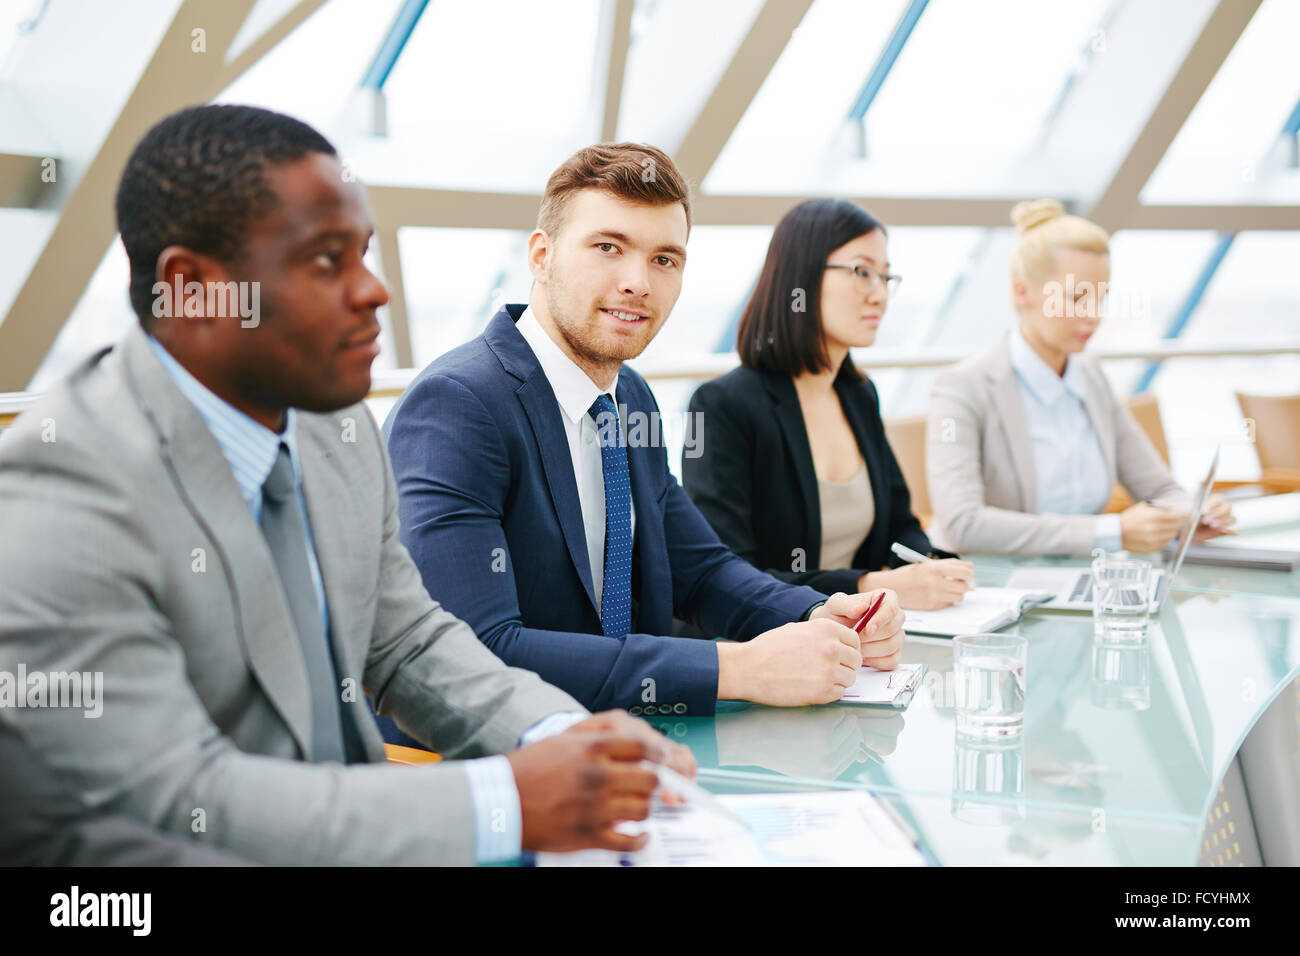 Young businessman looking at camera at conference among other employees - Stock Image